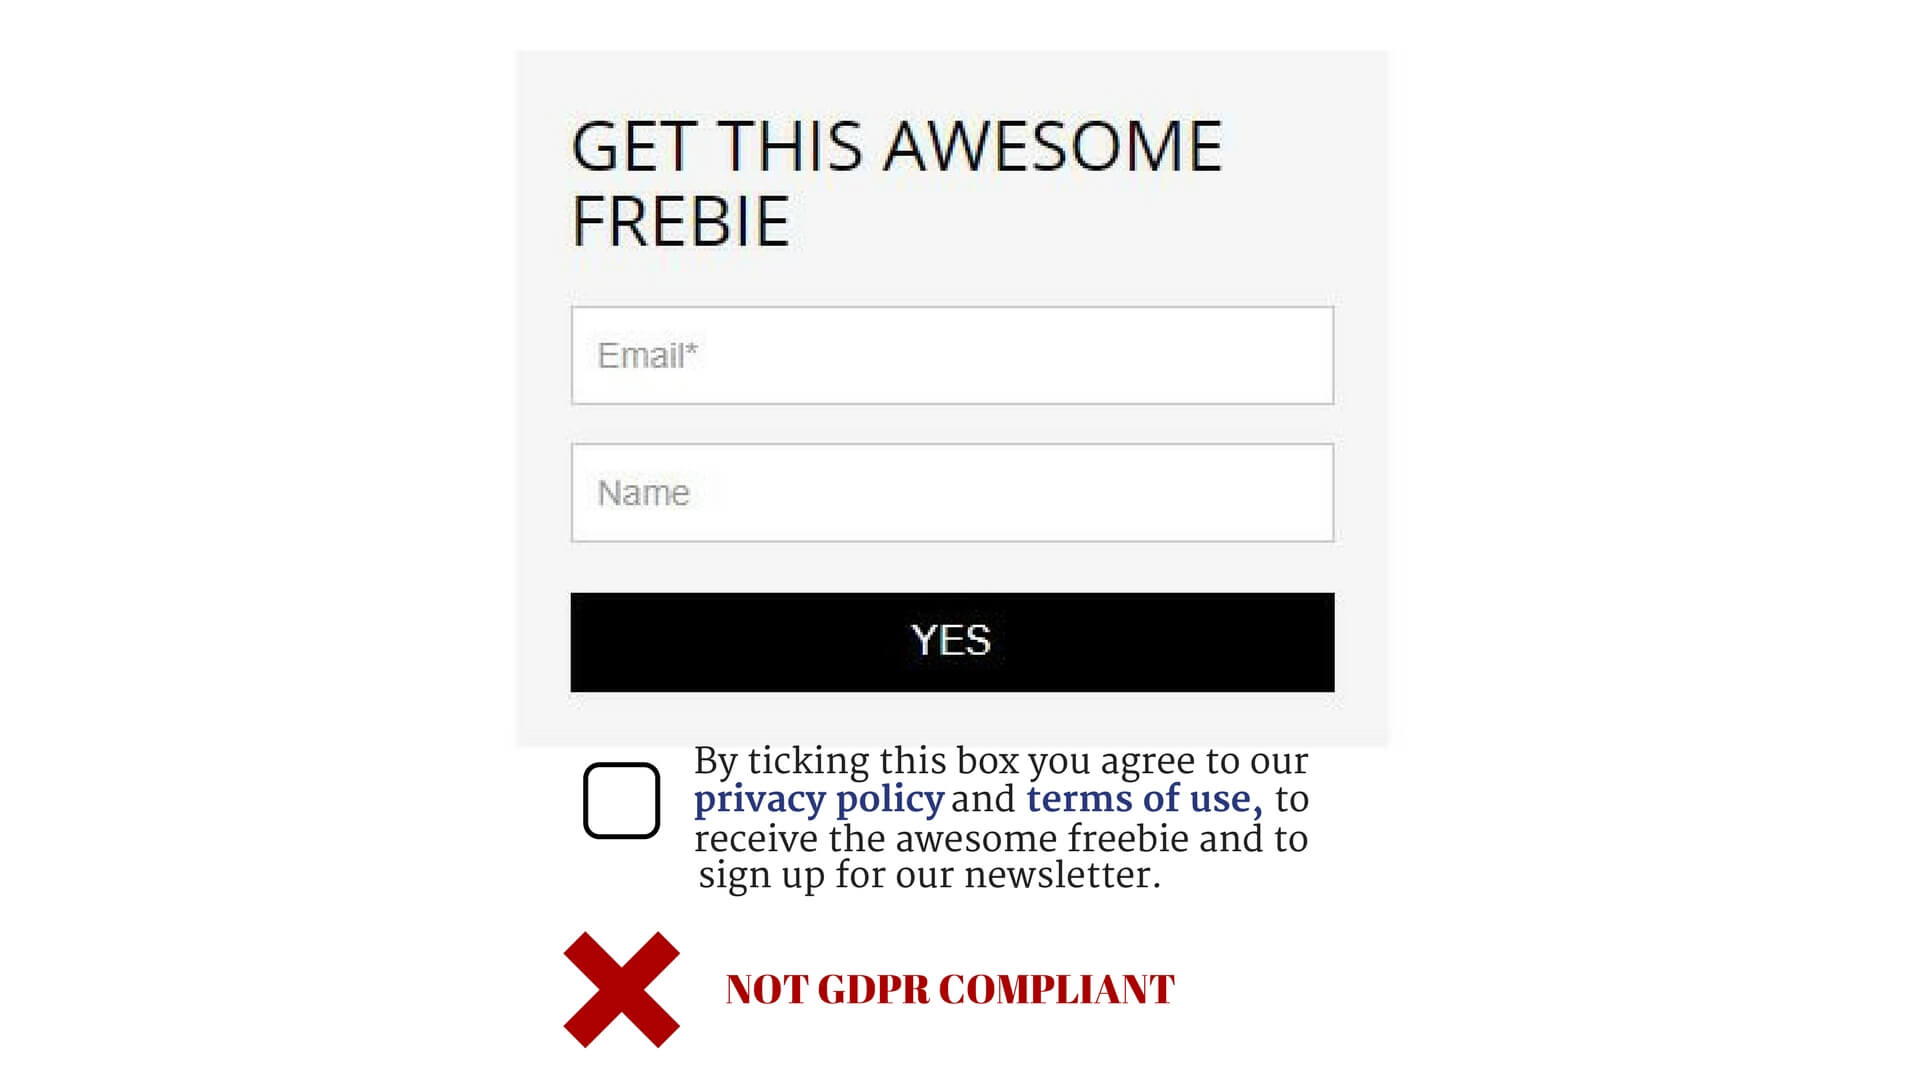 Sign up form - not GDPR compliant - bundled - not distinguishable